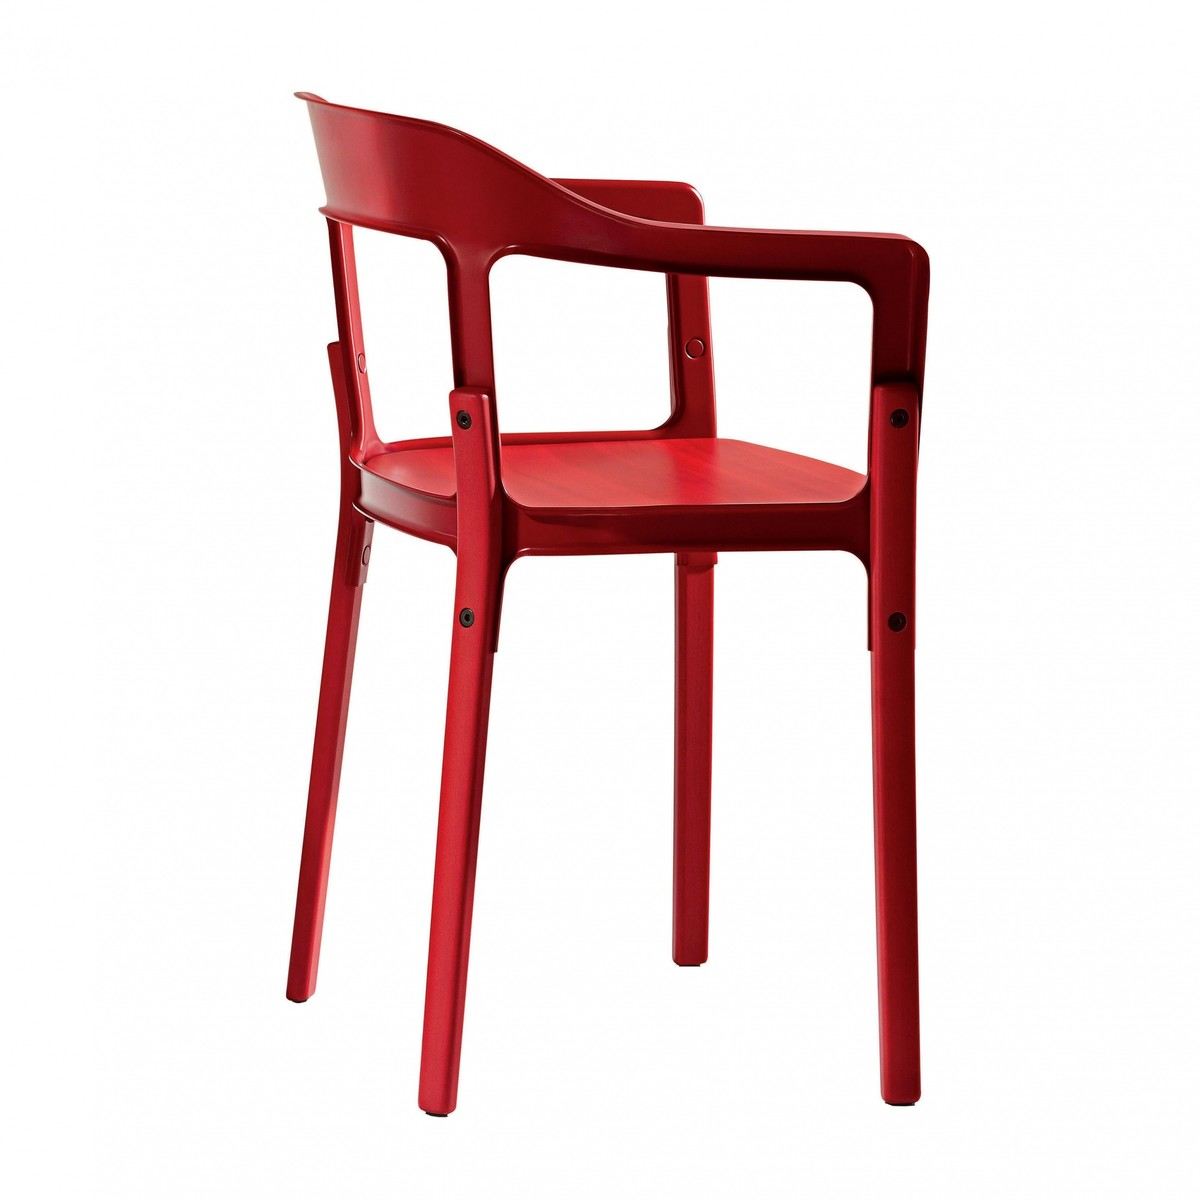 Steelwood chair silla con reposabrazos magis for Sillas con reposabrazos